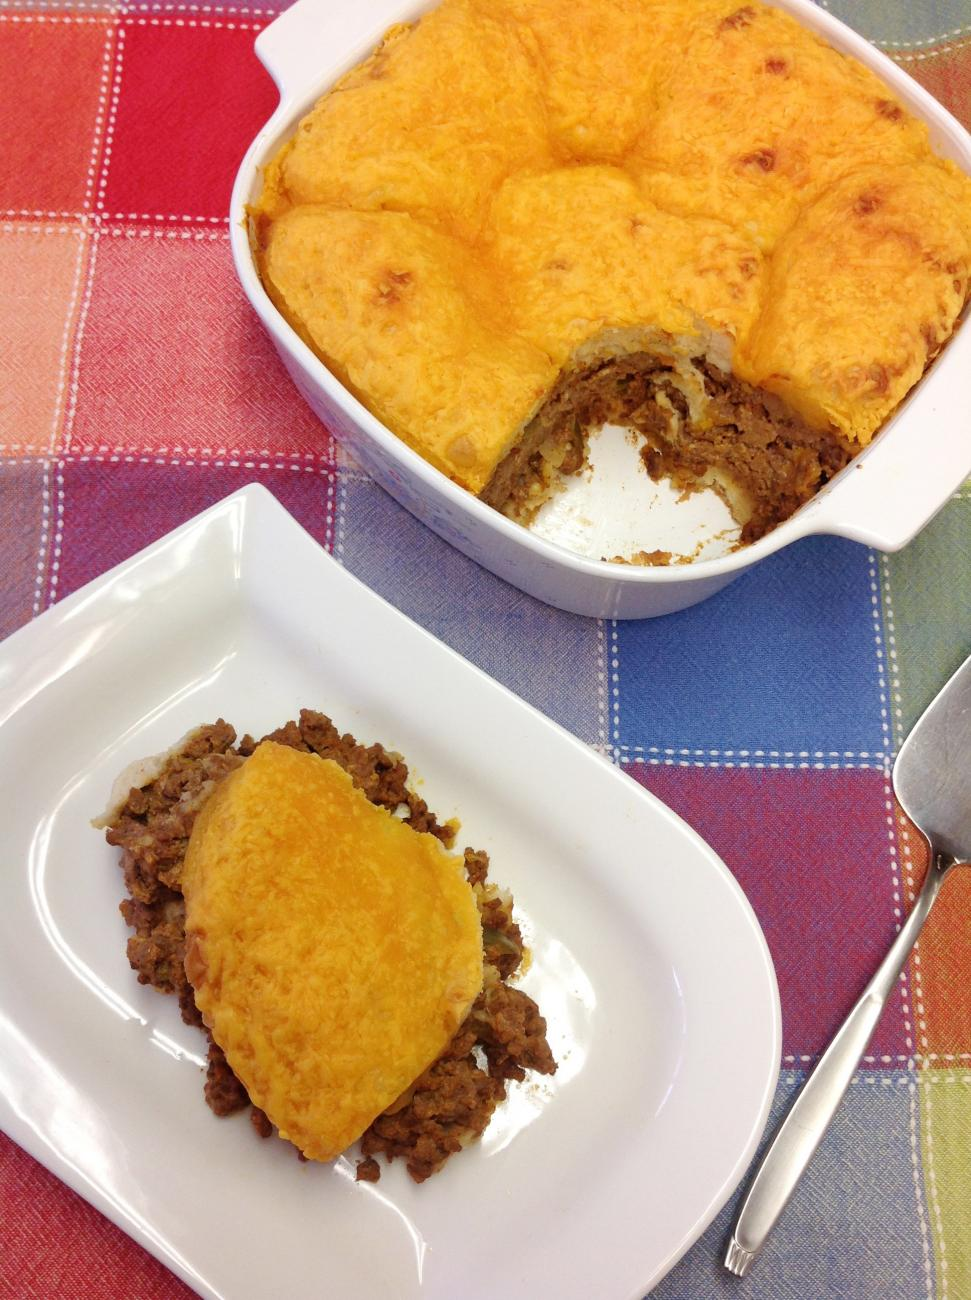 Recipe for Beef 'n' Biscuit Casserole